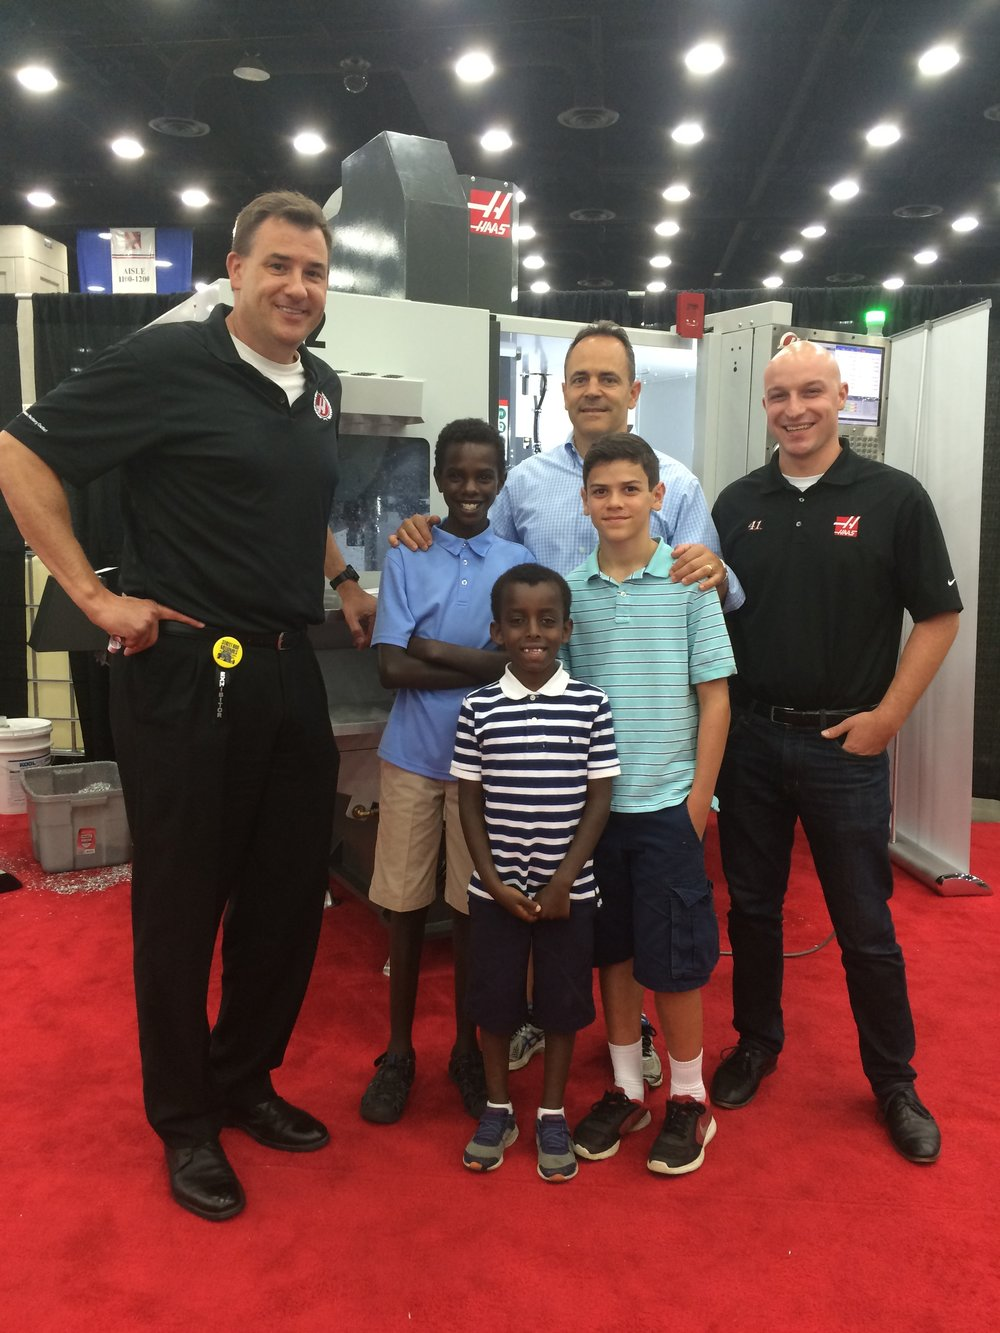 The photo was taken on Sunday at the 2017 NSRA (National Street Rod Association) Nationals event in Louisville, Kentucky. Featured in the photo is Kentucky Governor Matt Bevin with his 3 boys. Also shown are Phil Haming, HFO Midwest Sales Engineer (shown left) and Aaron Evans, HFO Midwest Application Engineer (shown right). The machine in the background is a Haas DT-2 Drill Tap Machining Center, used in high-volume production of precision parts. As you know, this machine is made by Haas Automation in their Oxnard, CA factory.